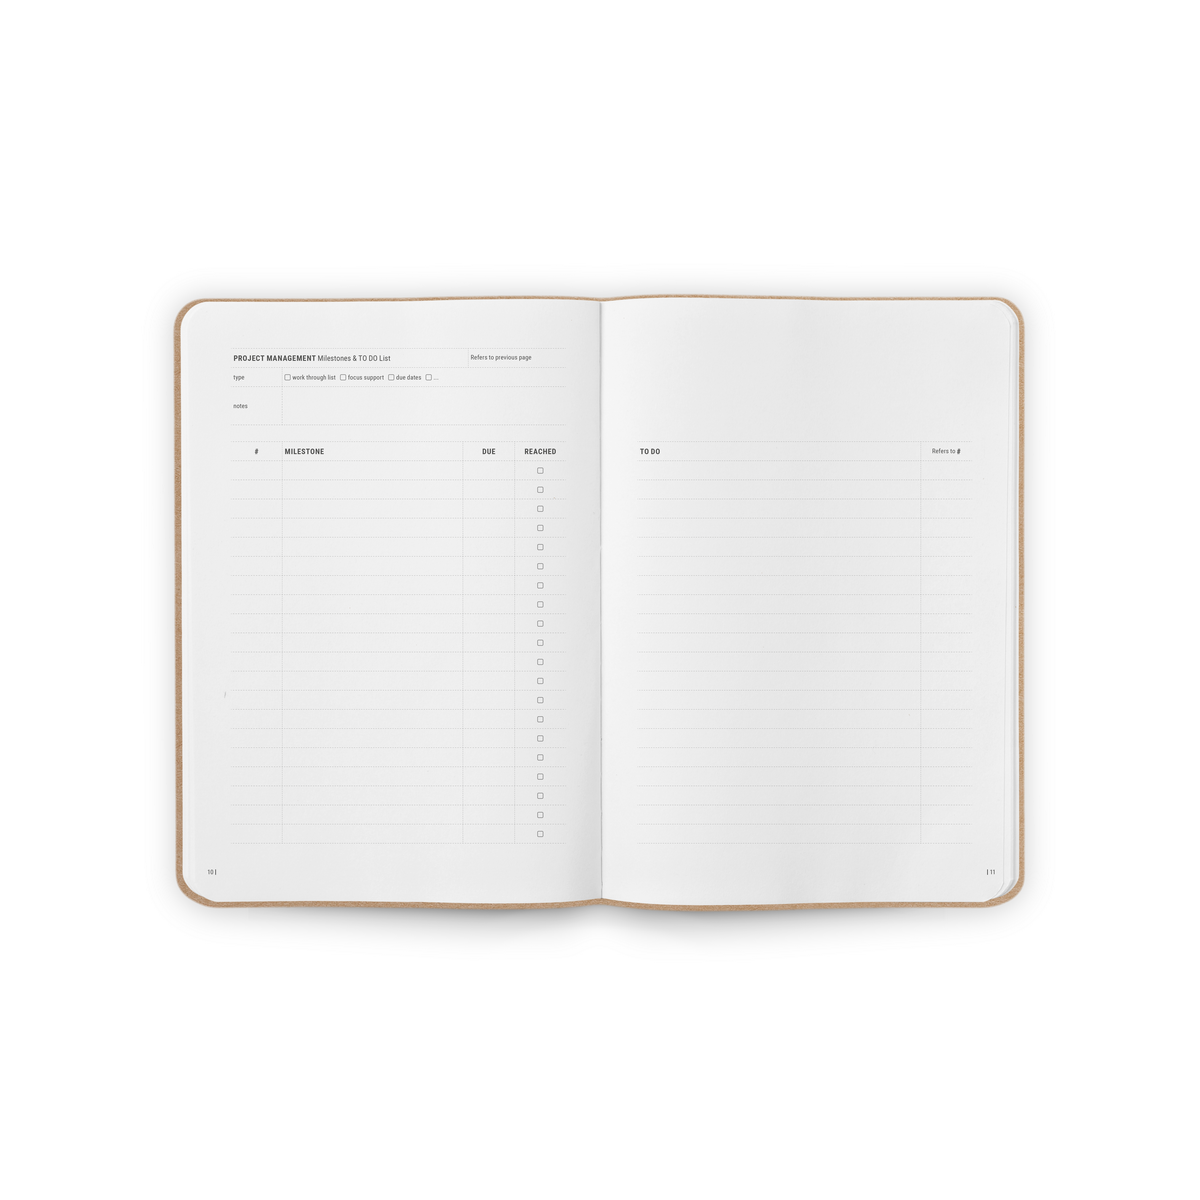 B-118_Projectmanagement_Stationery_Notebook_Spread2